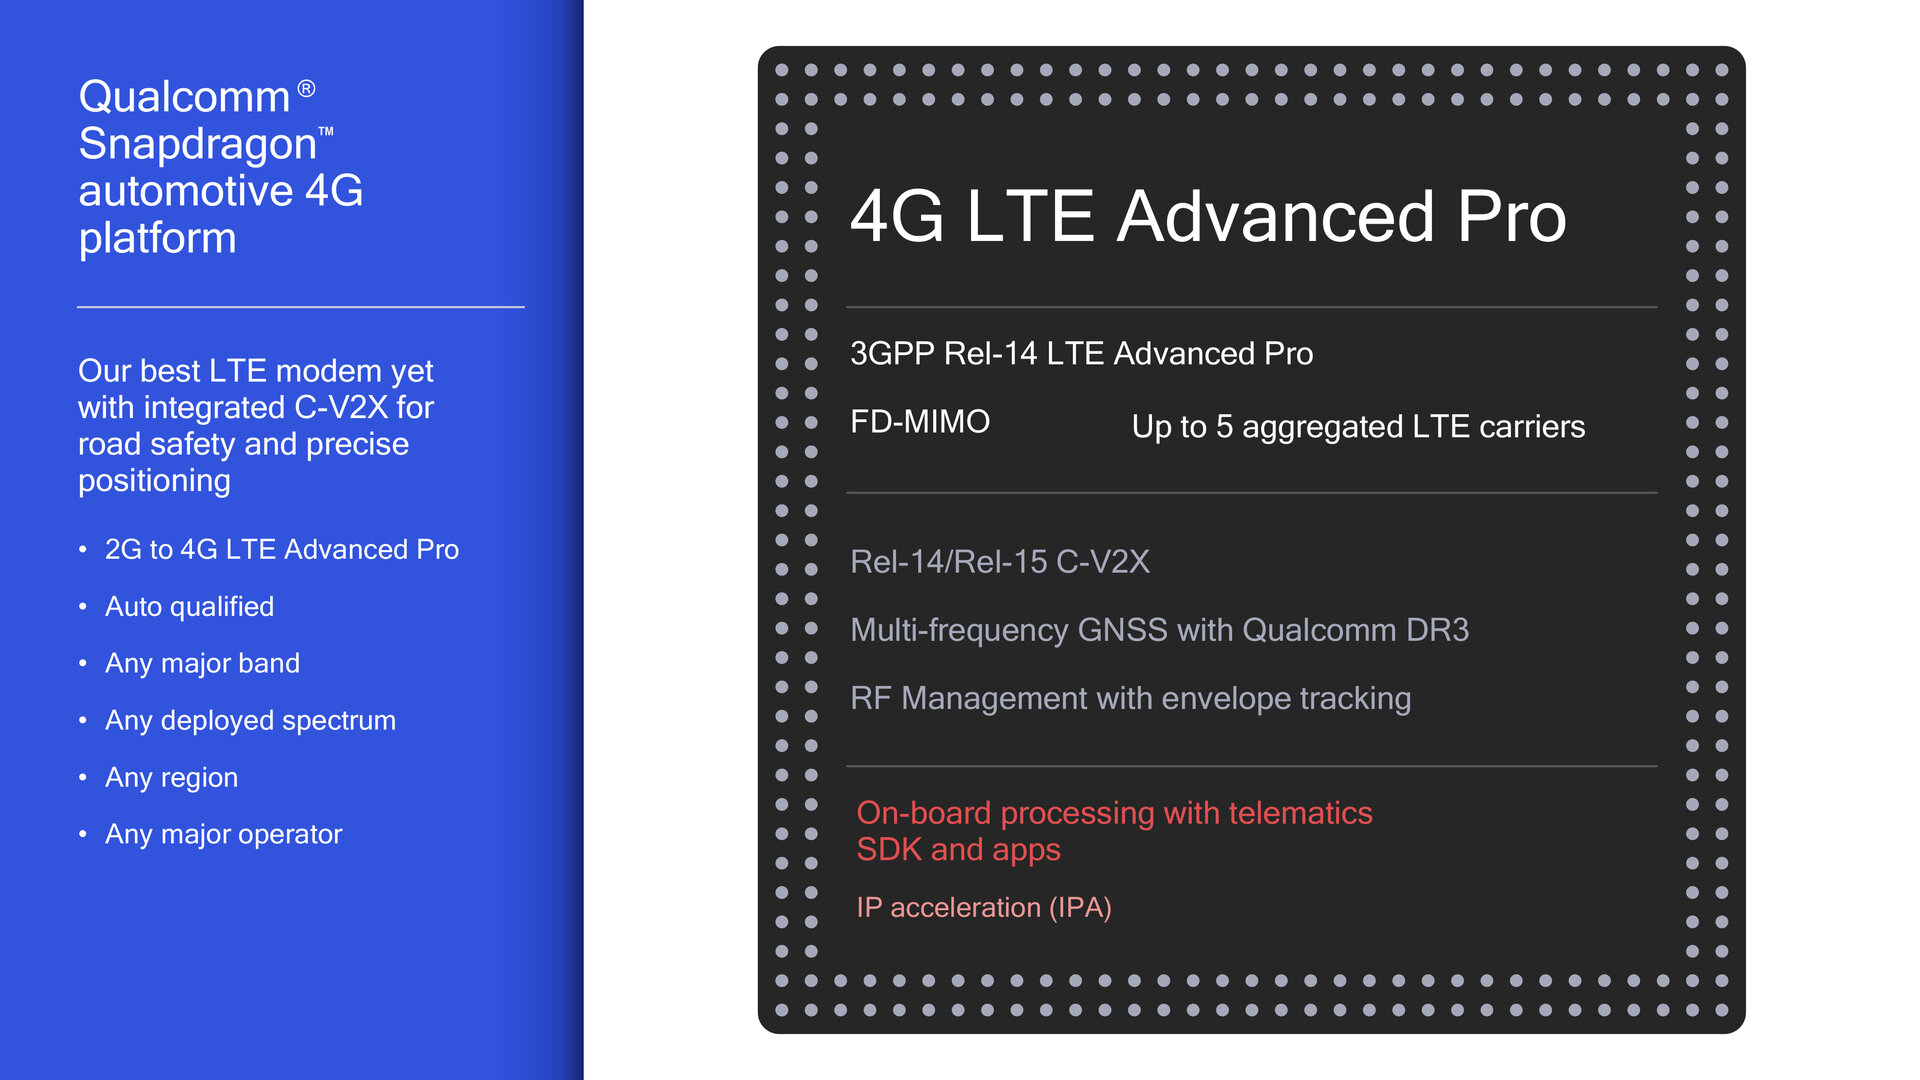 Snapdragon Automotive 4G Platform